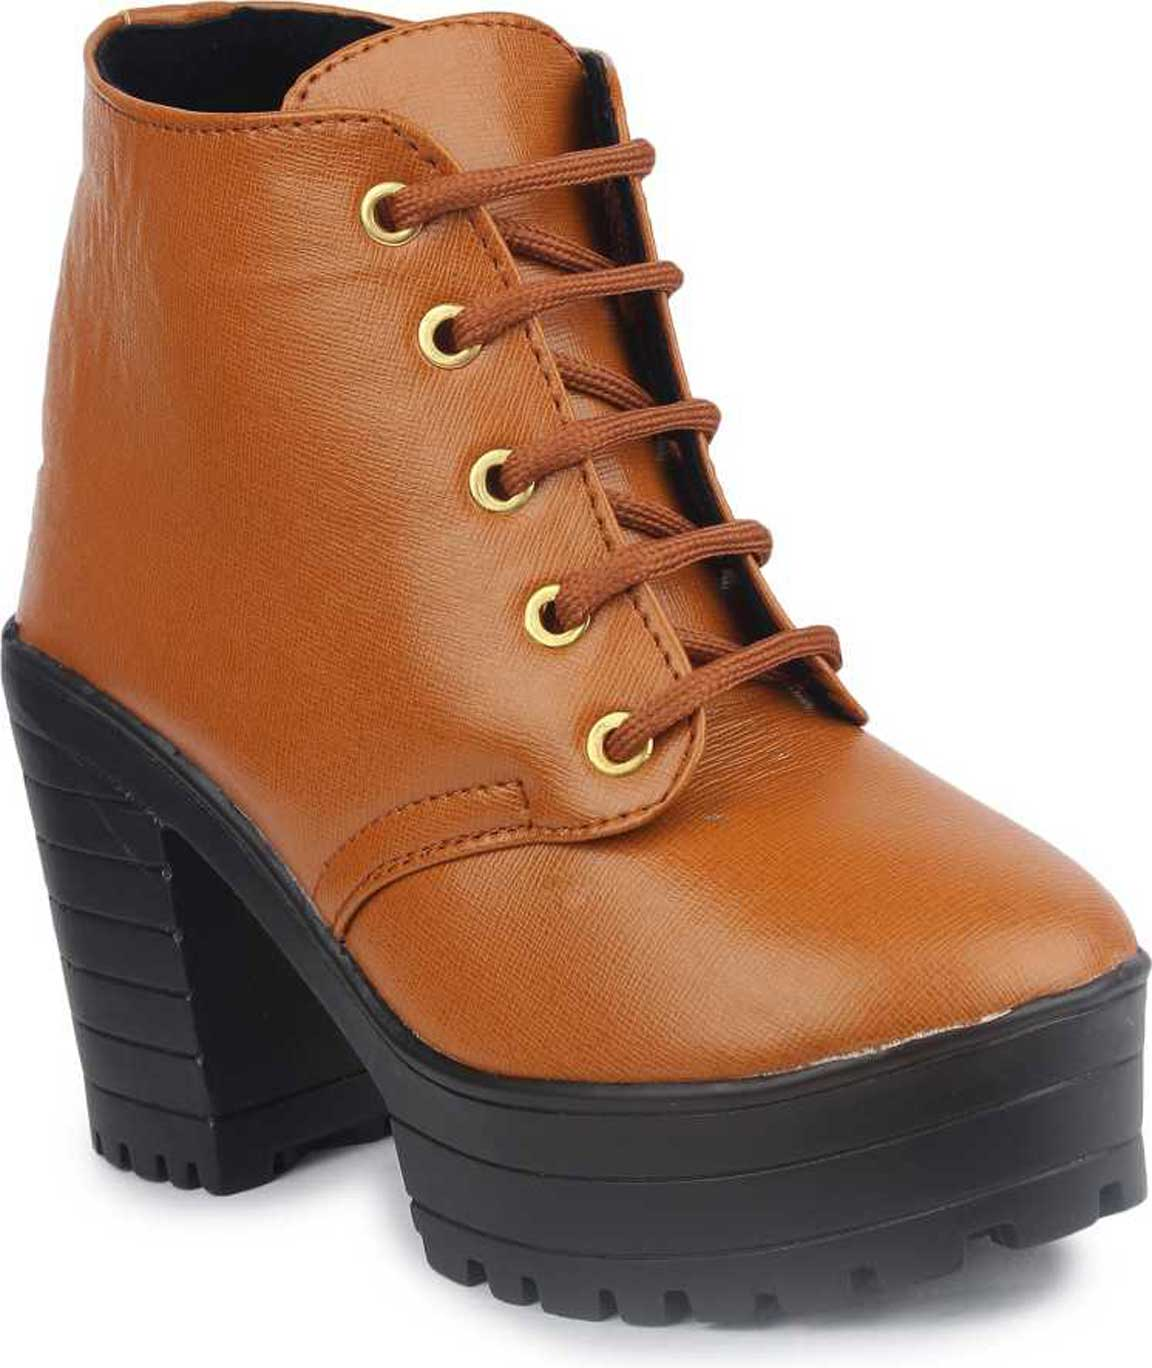 BOOTS FOR WOMEN ( TAN,BROWN)